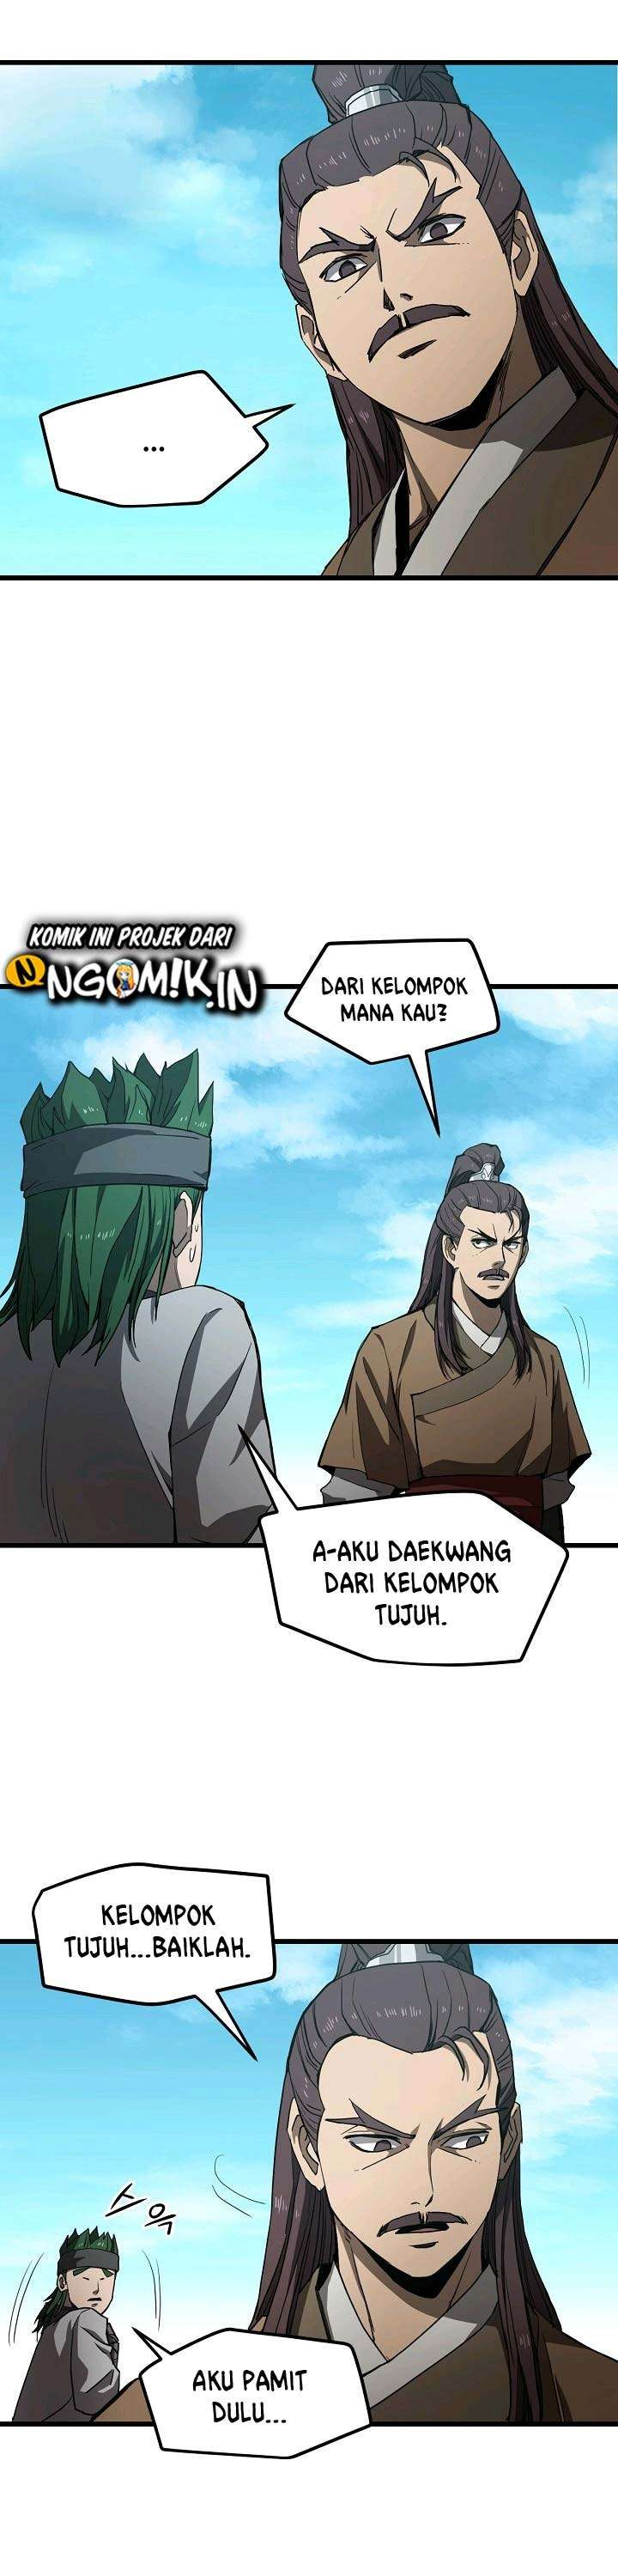 Reign Chapter 04 Bahasa Indonesia page 59